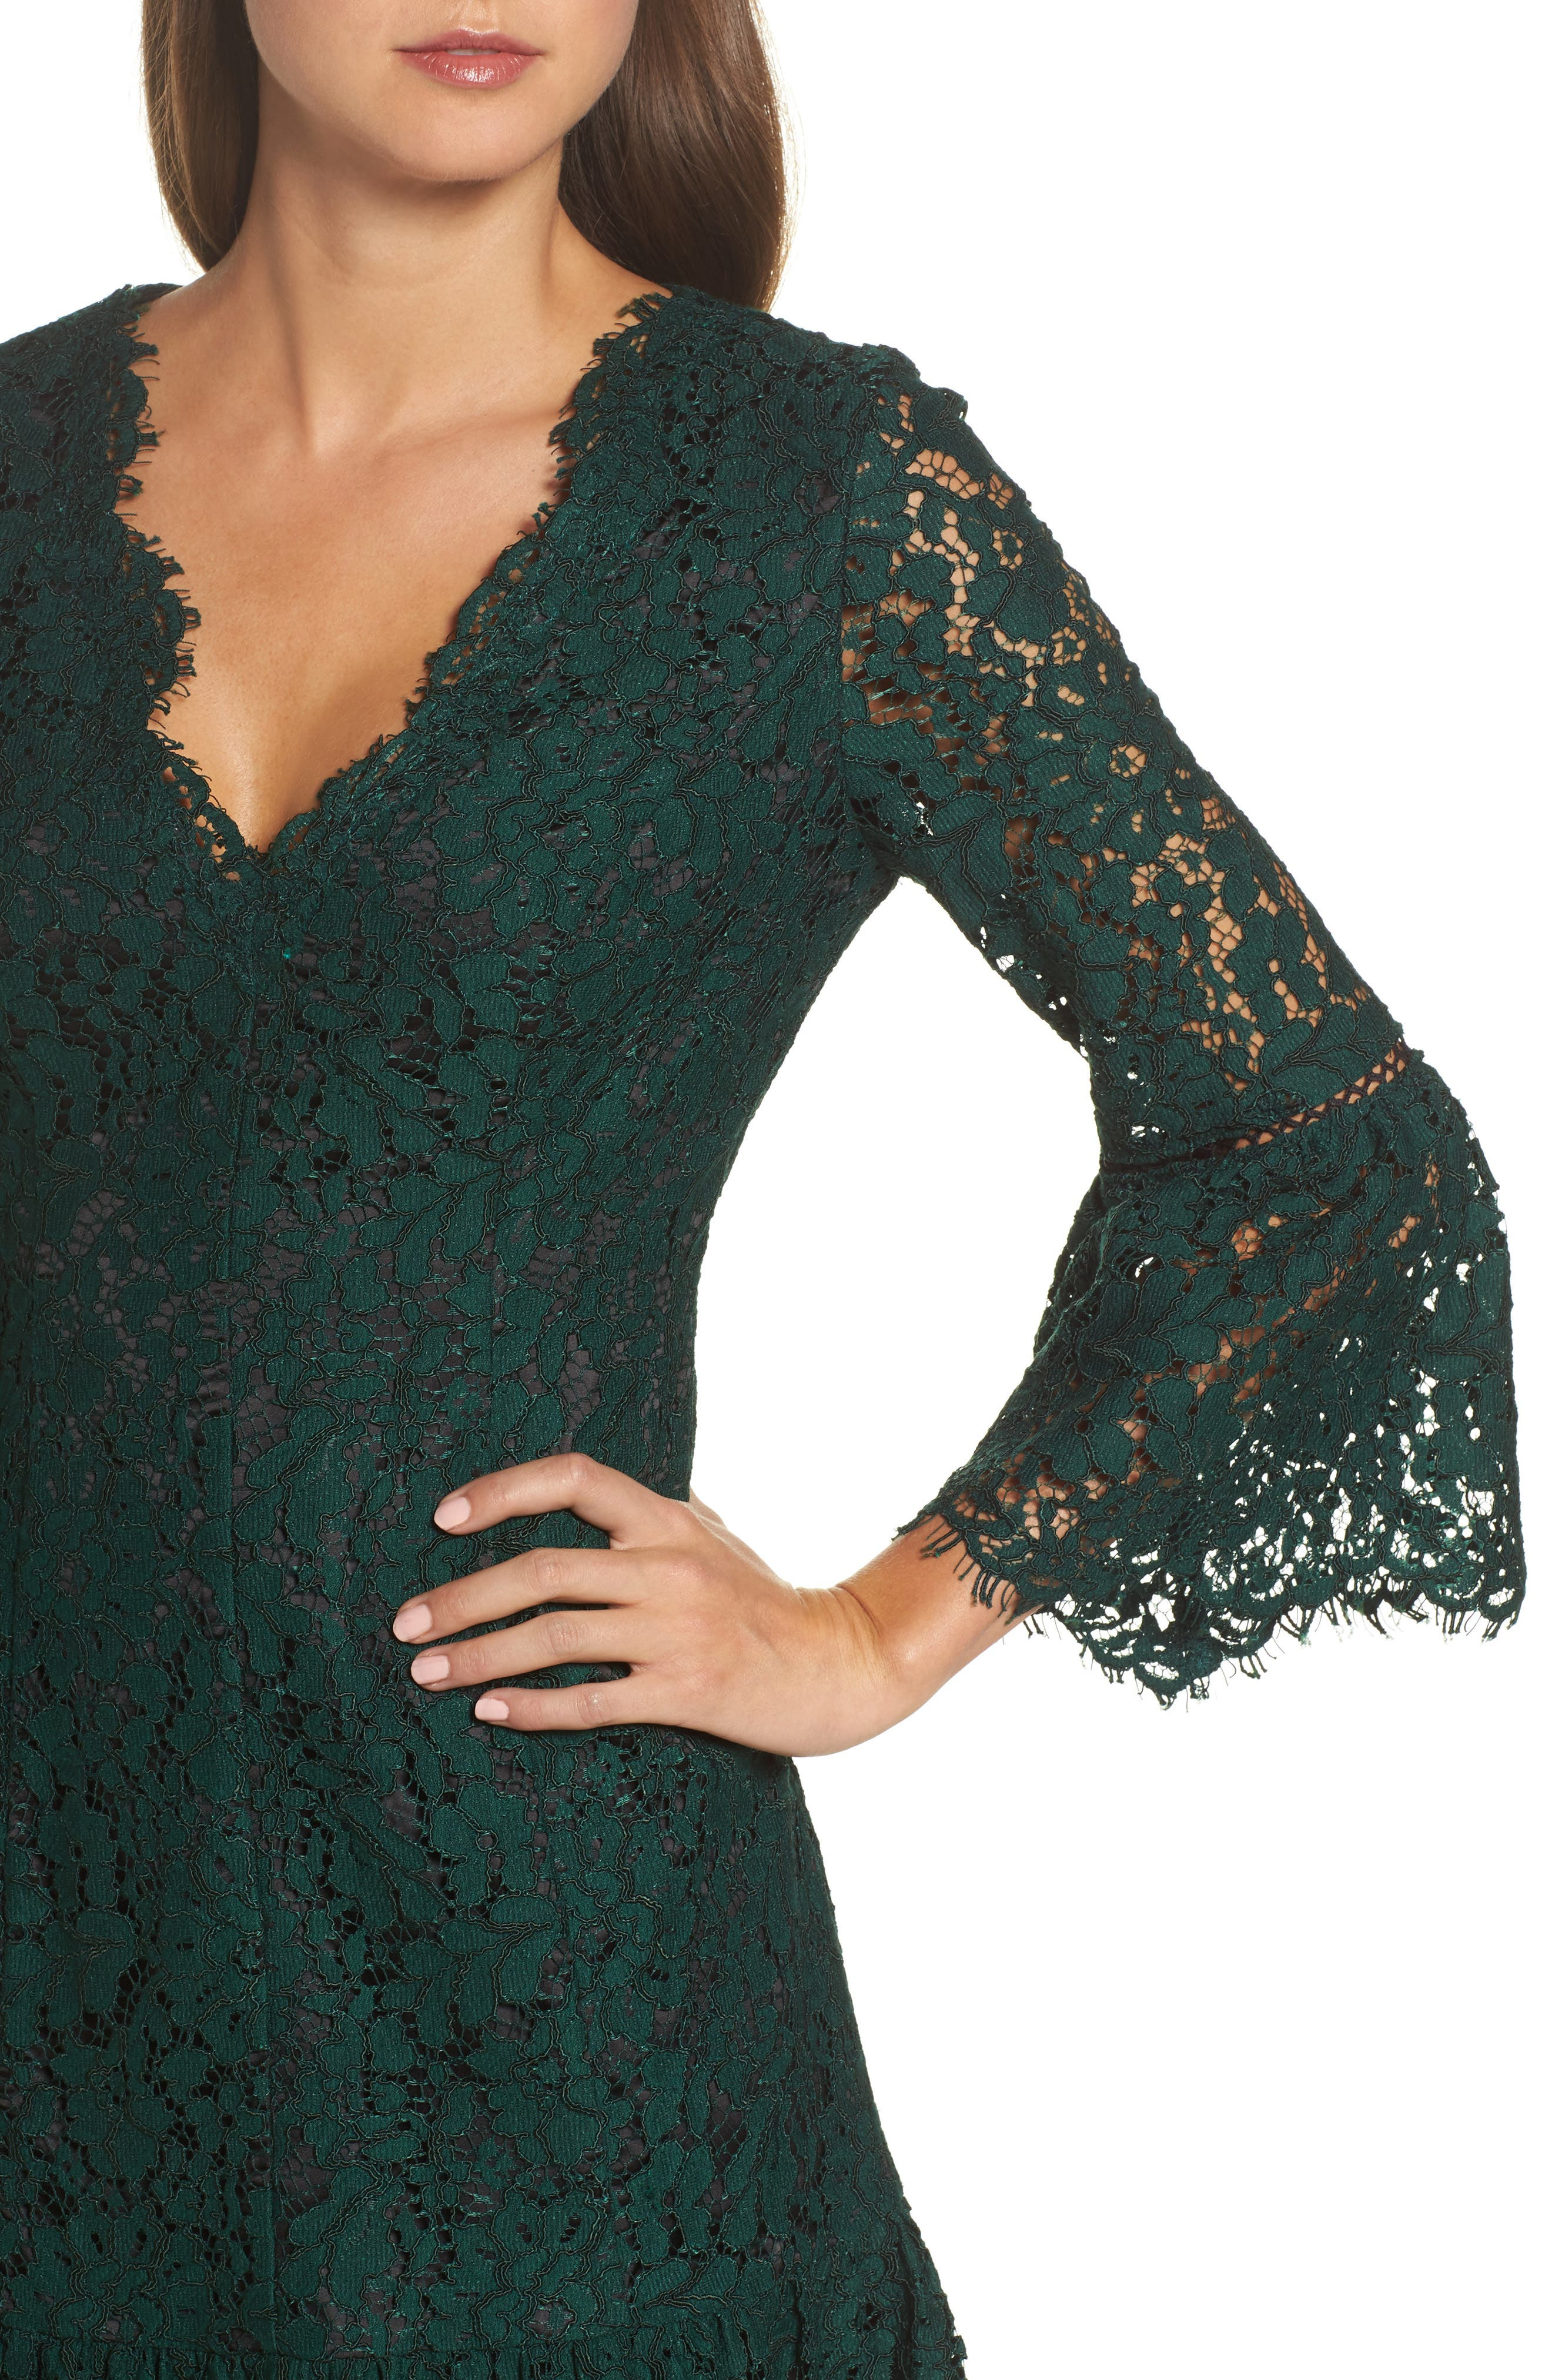 Bell Sleeve Lace Dress,                             Alternate thumbnail 4, color,                             Green/ Black